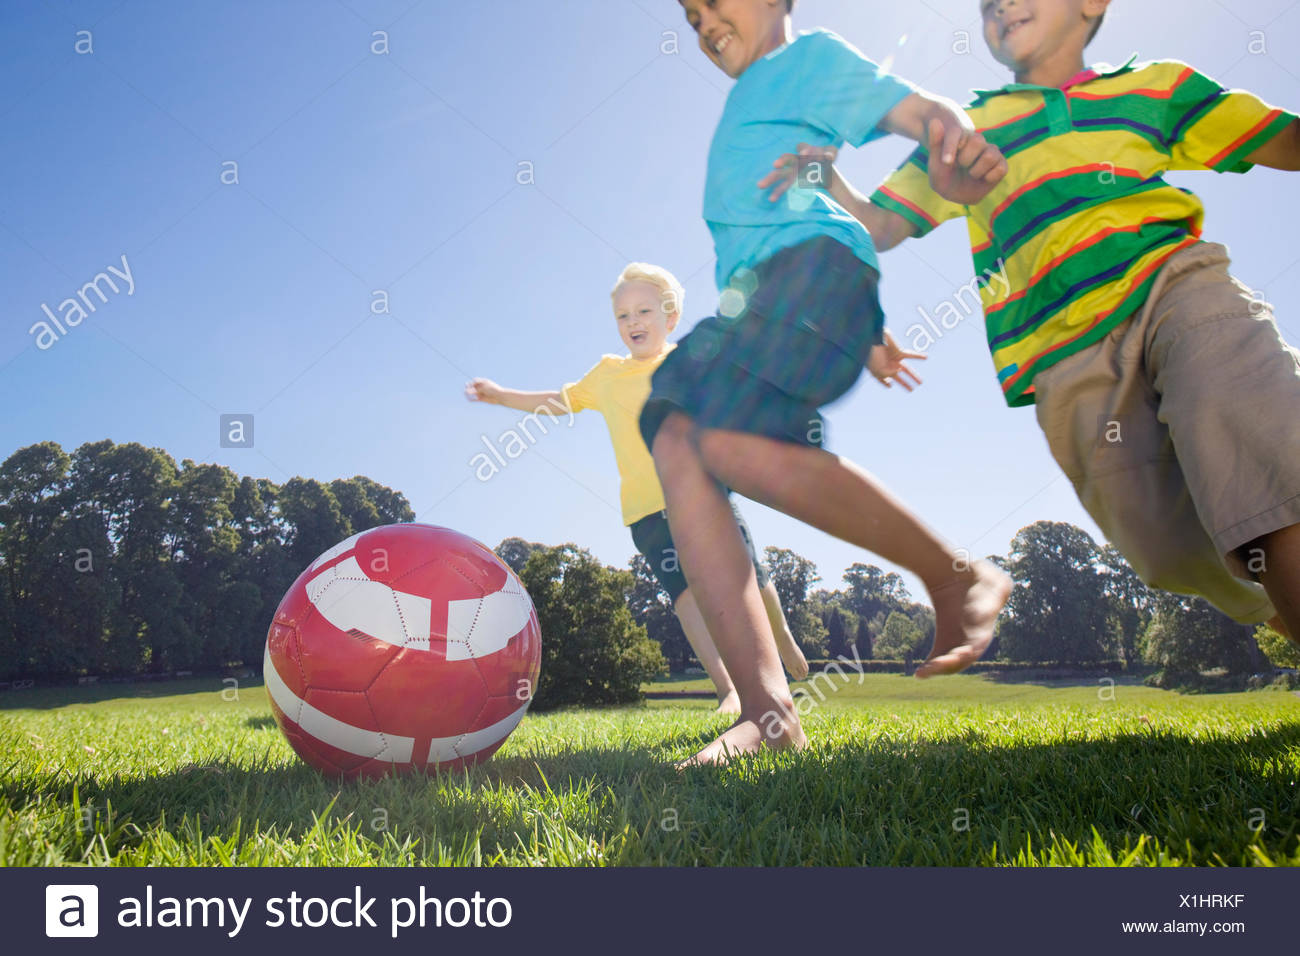 Smiling boys playing soccer in park Photo Stock